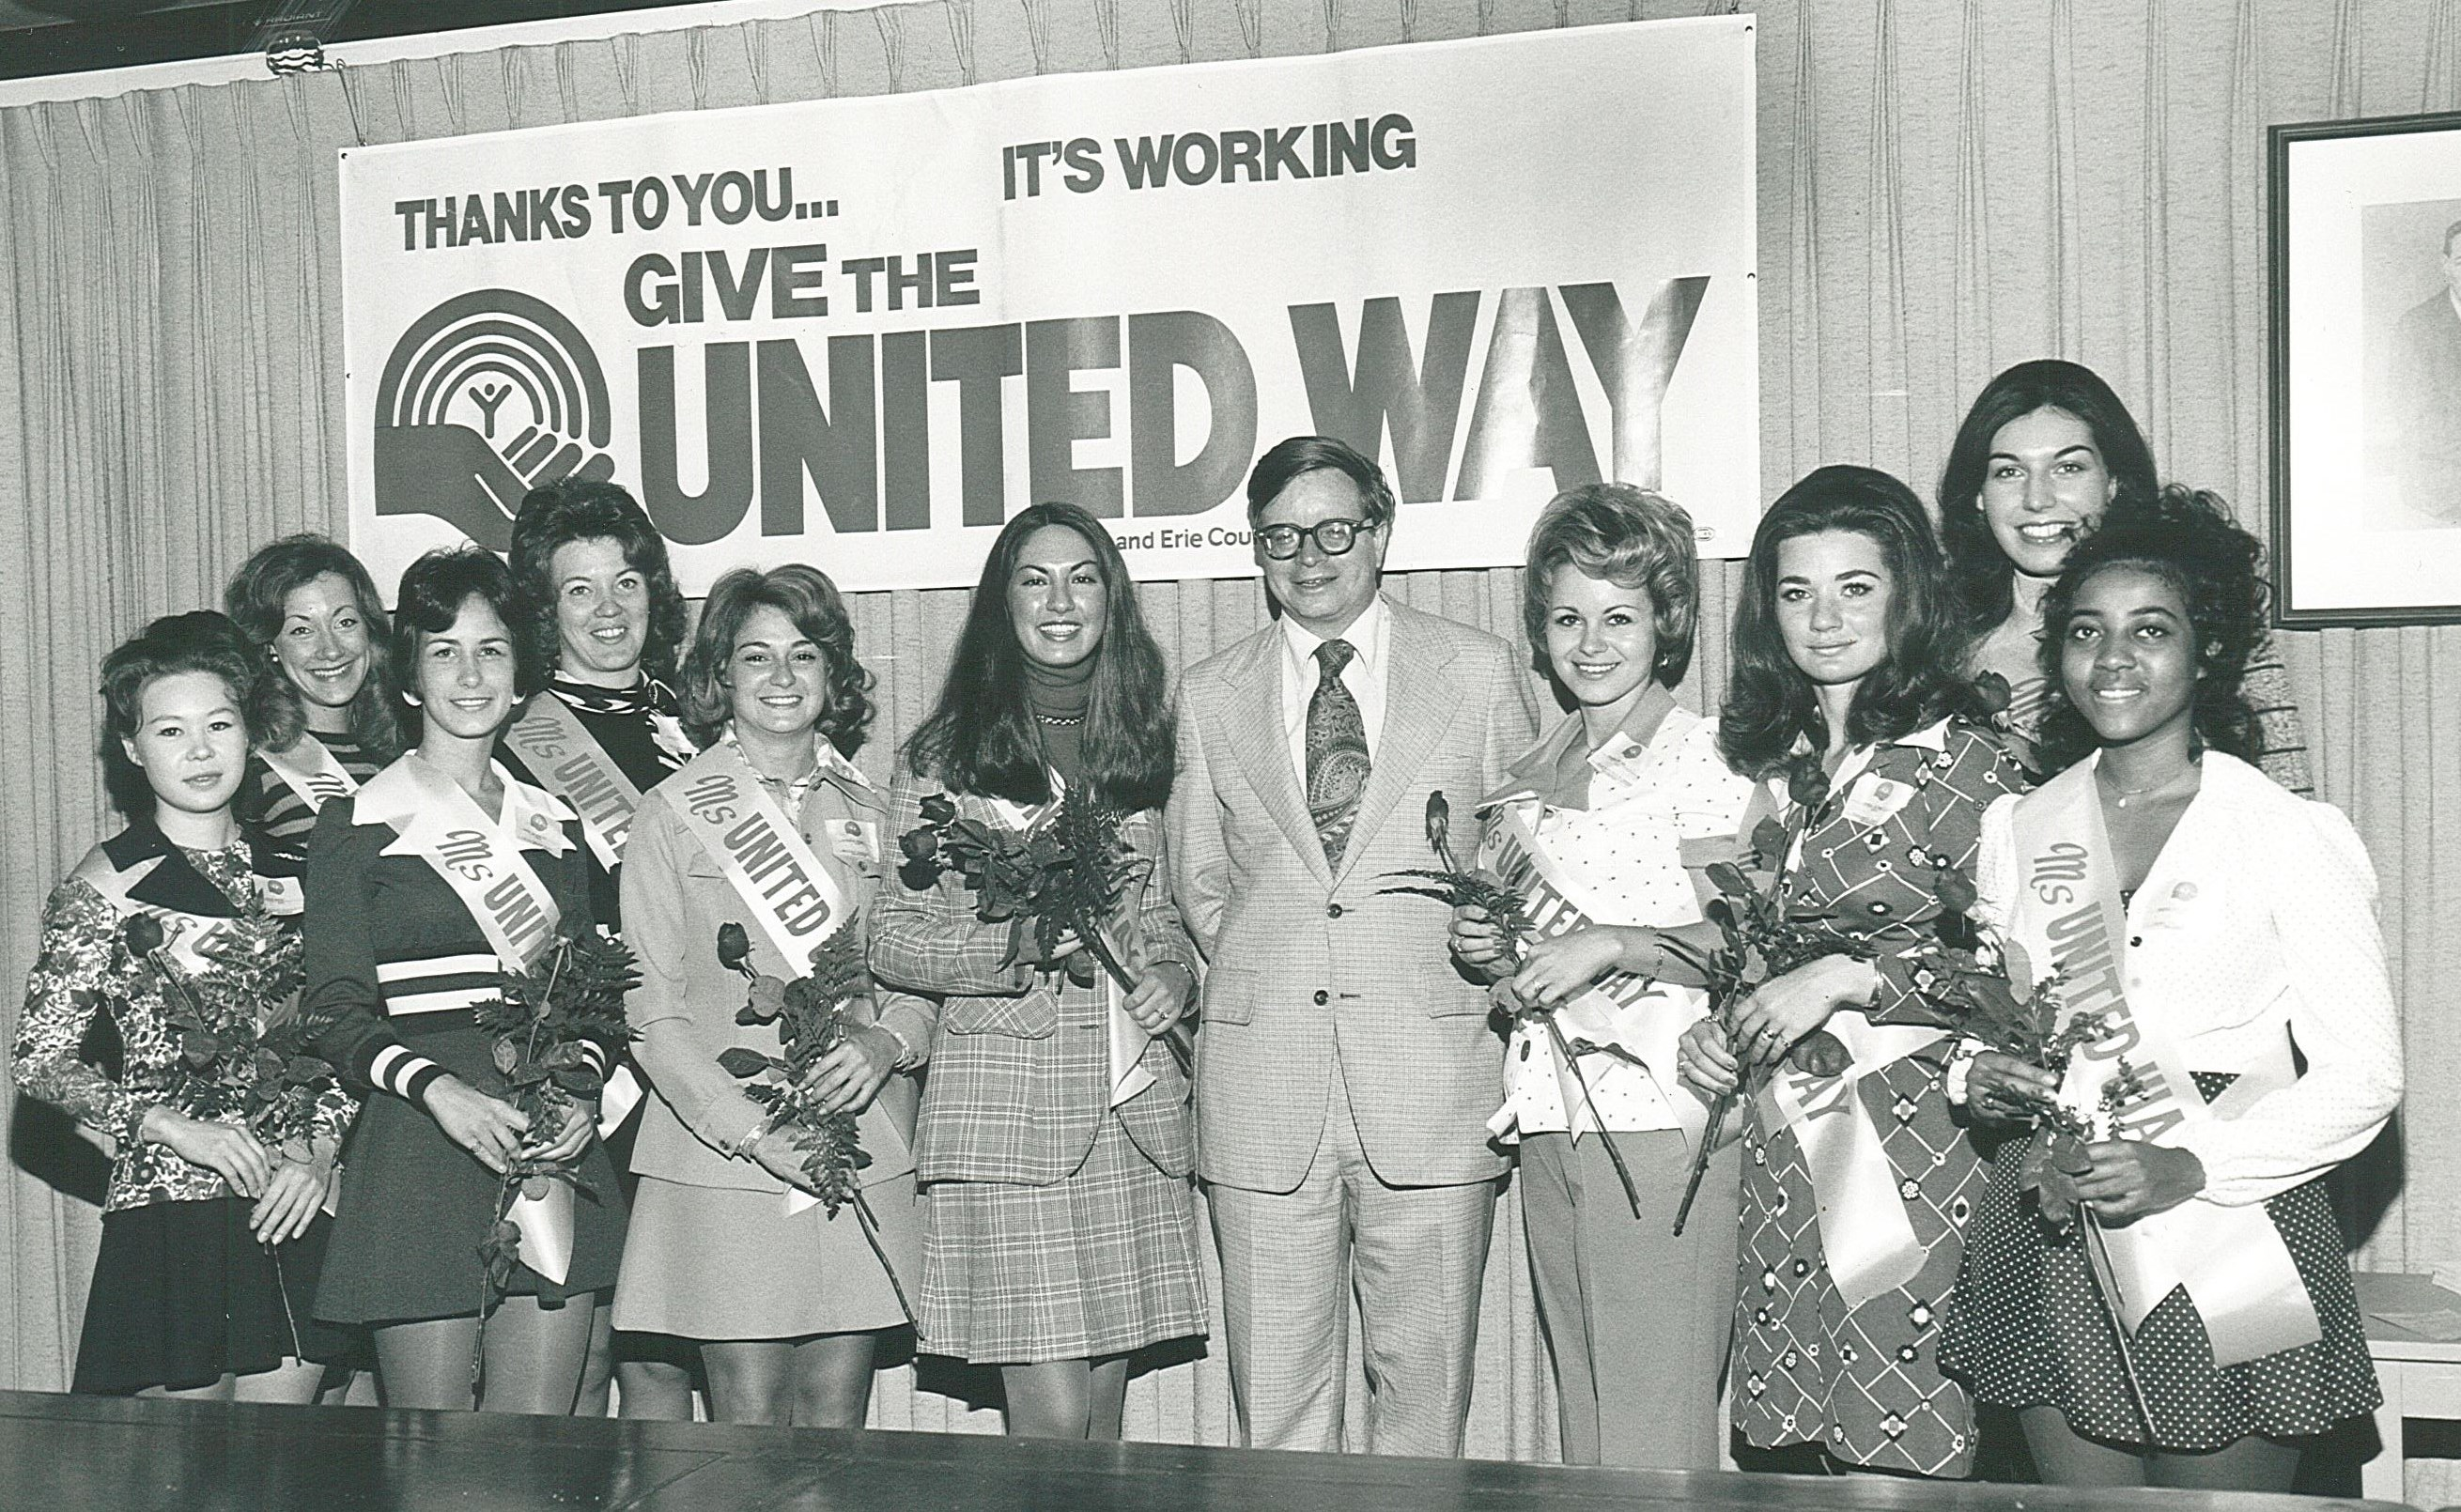 An Old Tradition: Miss United Way Image